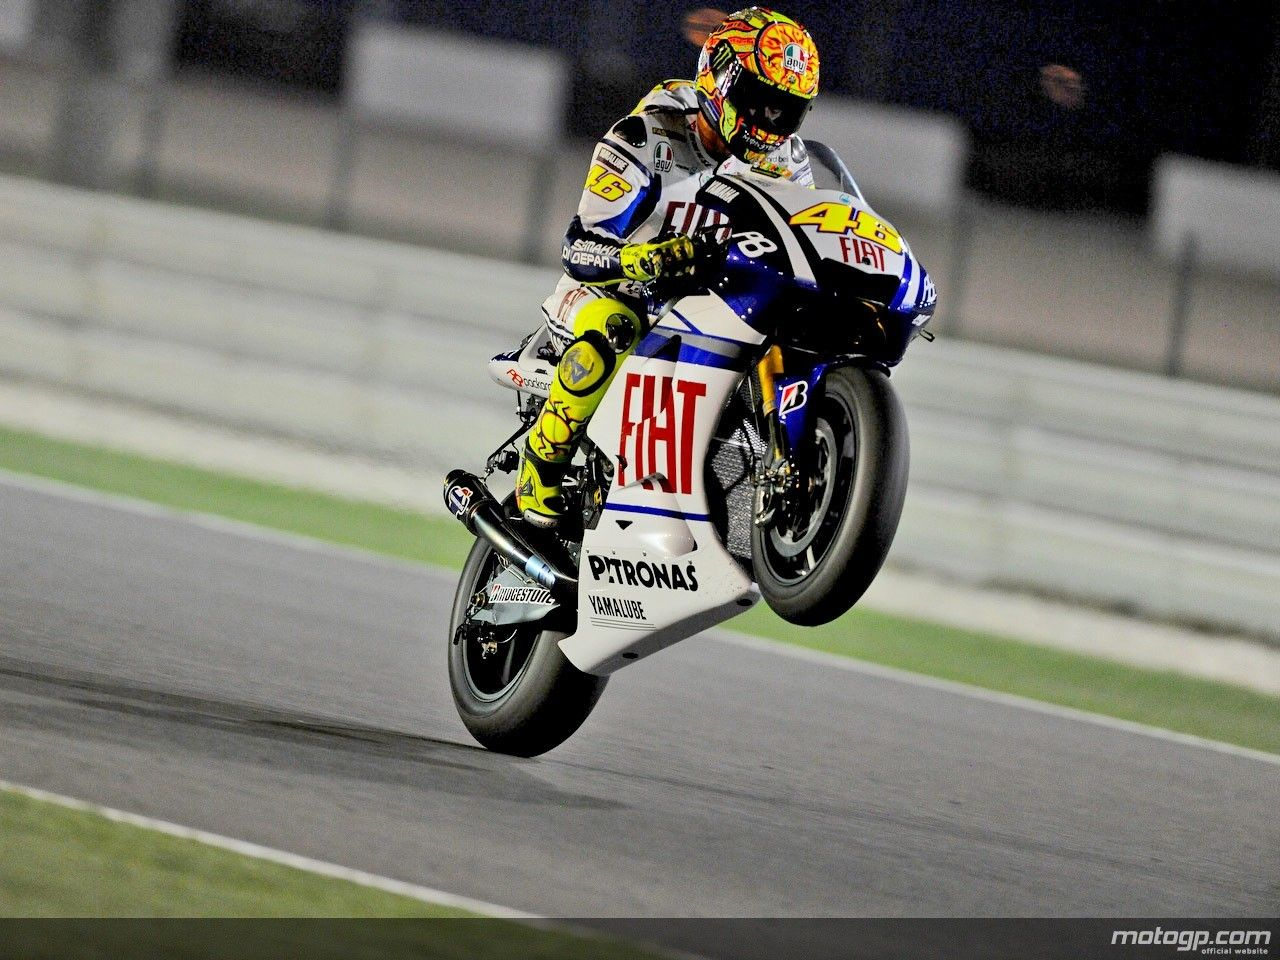 Valentino rossi wallpaper collection 498500 wallpaper valentino valentino rossi wallpaper collection 498500 wallpaper valentino rossi 35 wallpapers adorable voltagebd Images